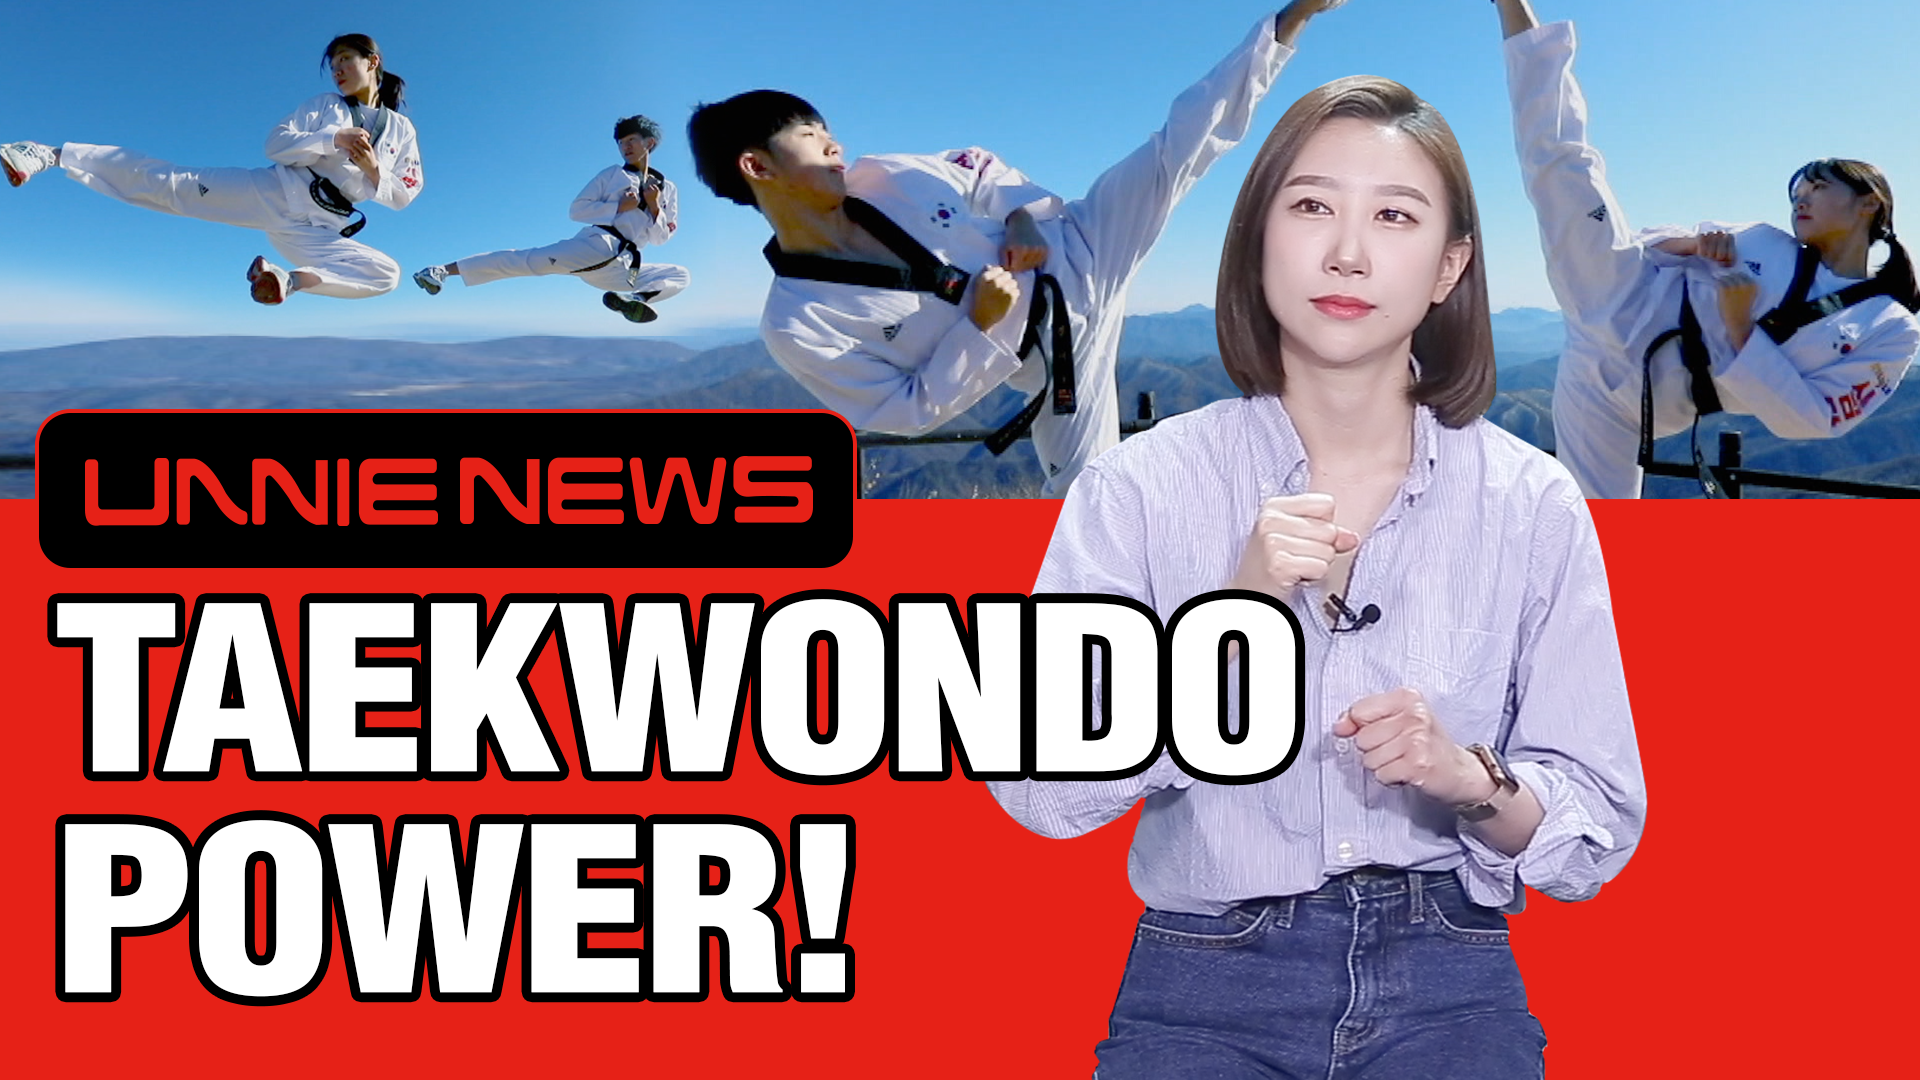 [UNNIE NEWS] TAEKWONDO POWER!